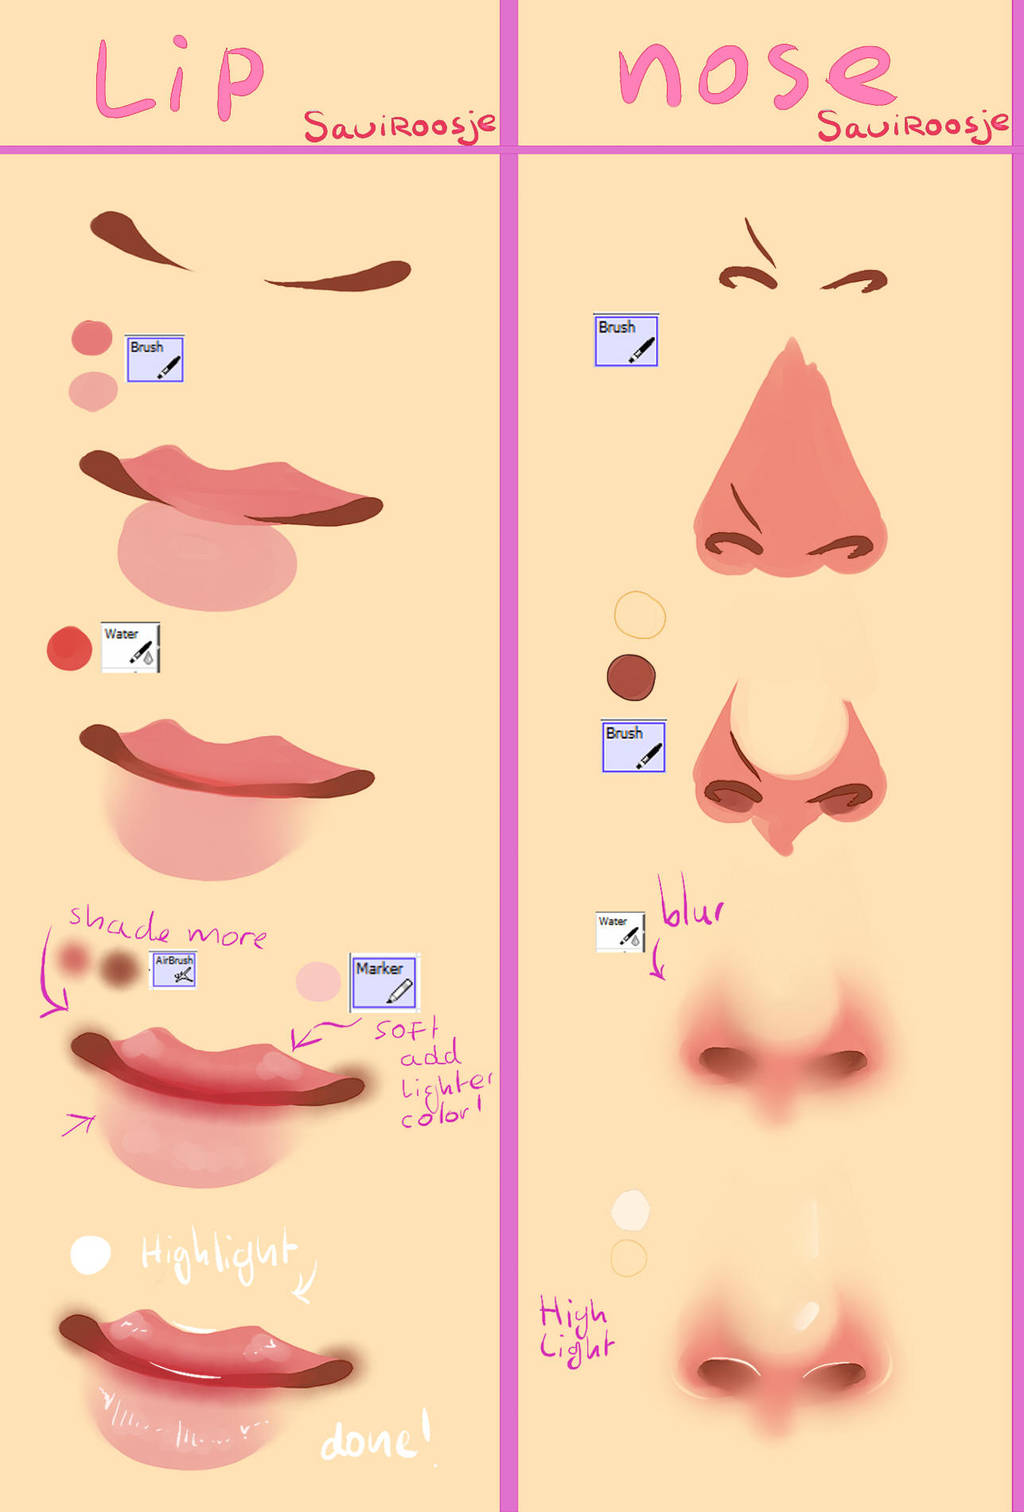 Step by Step - Lips and Nose by Saviroosje